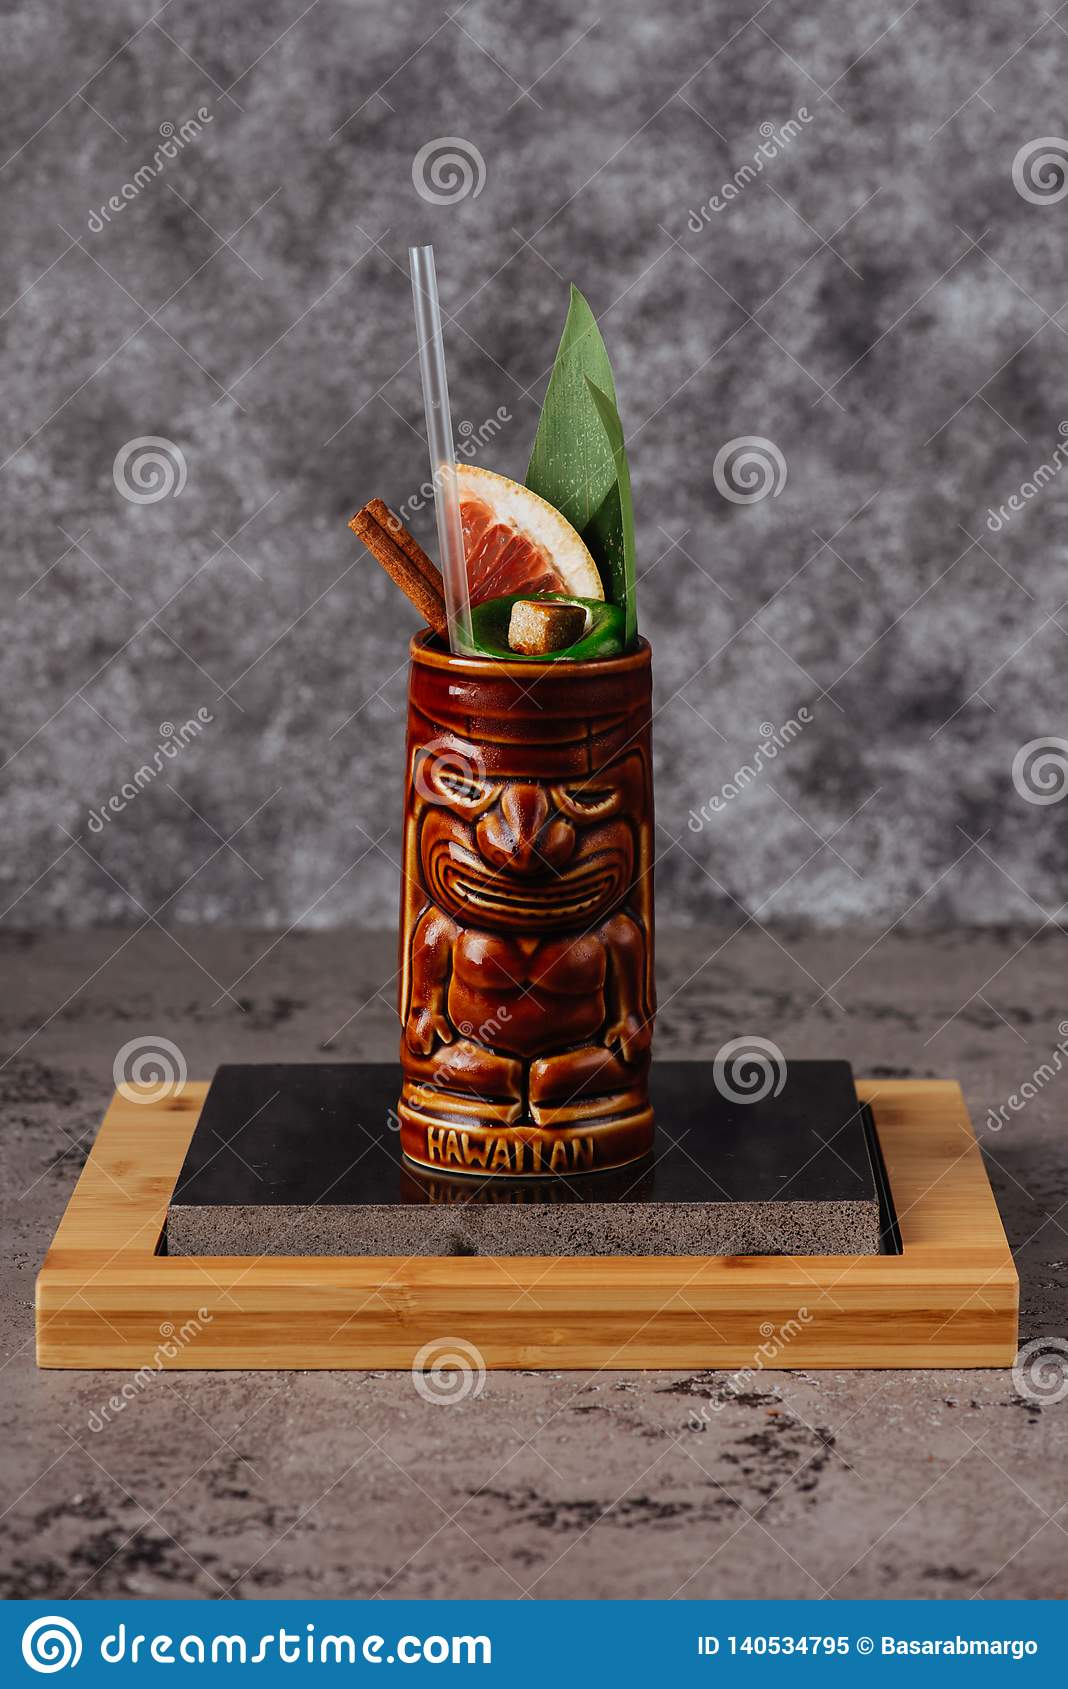 Tropical cocktail served in a tiki style glass